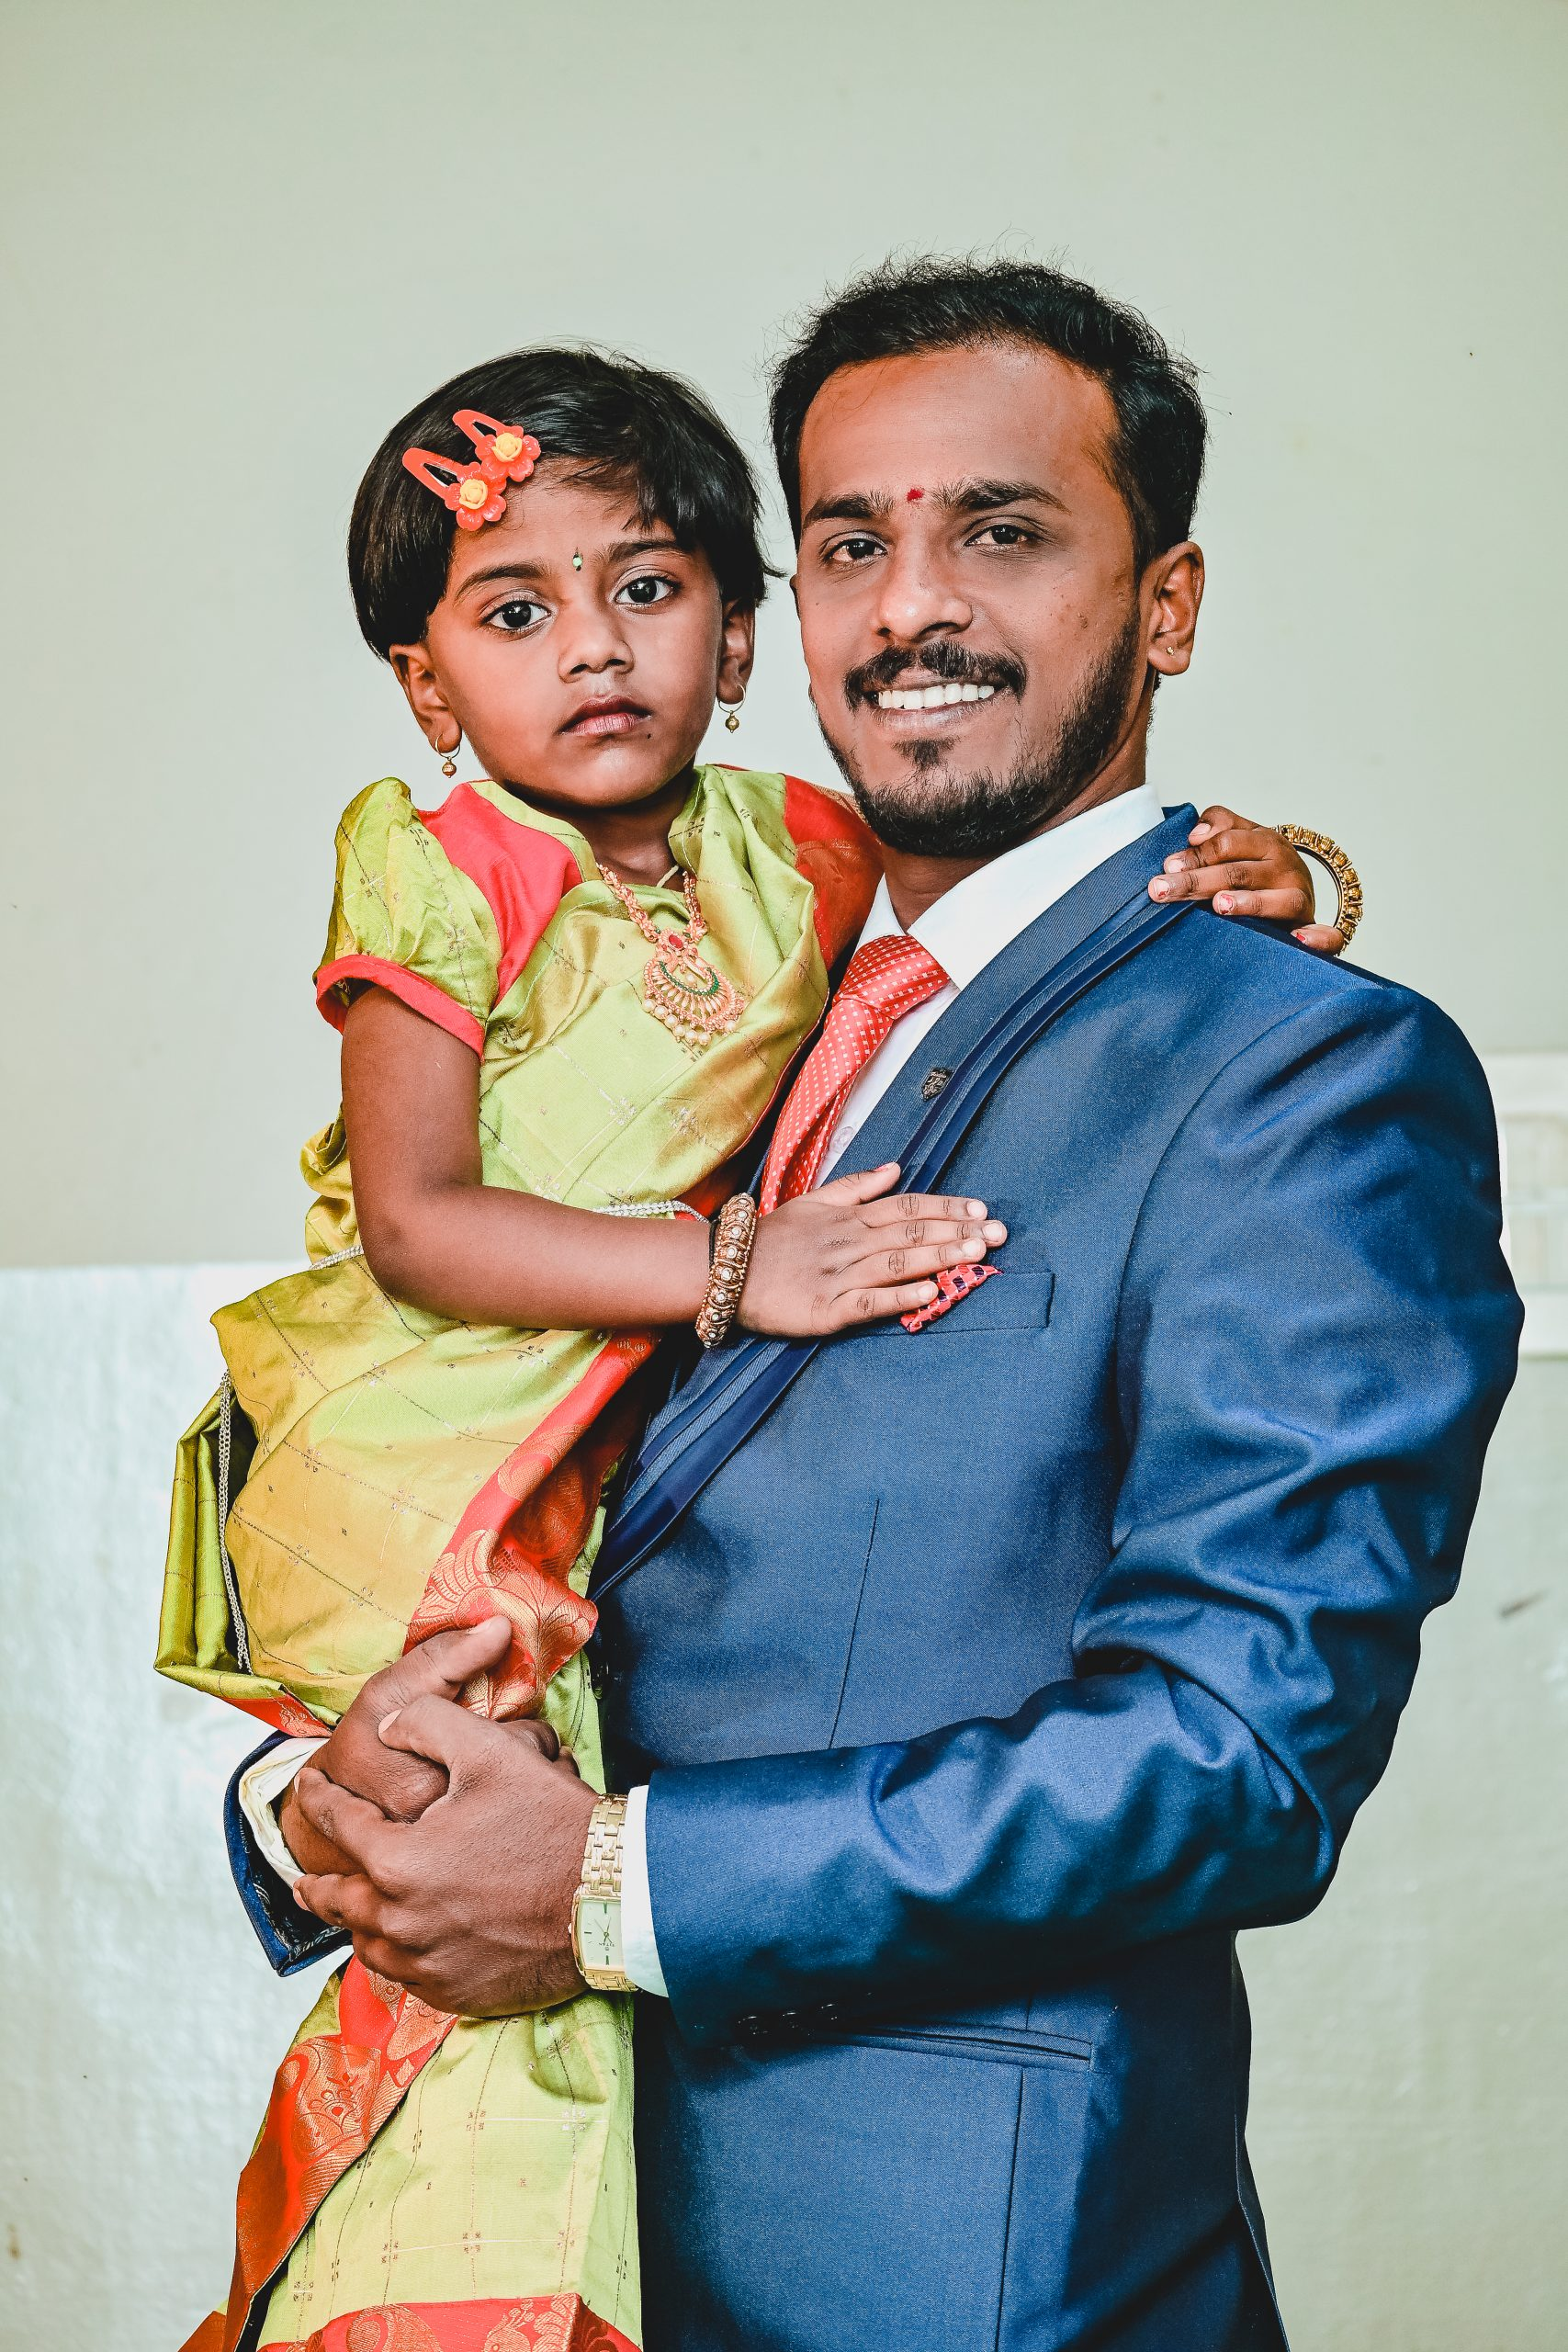 Man posing with little girl